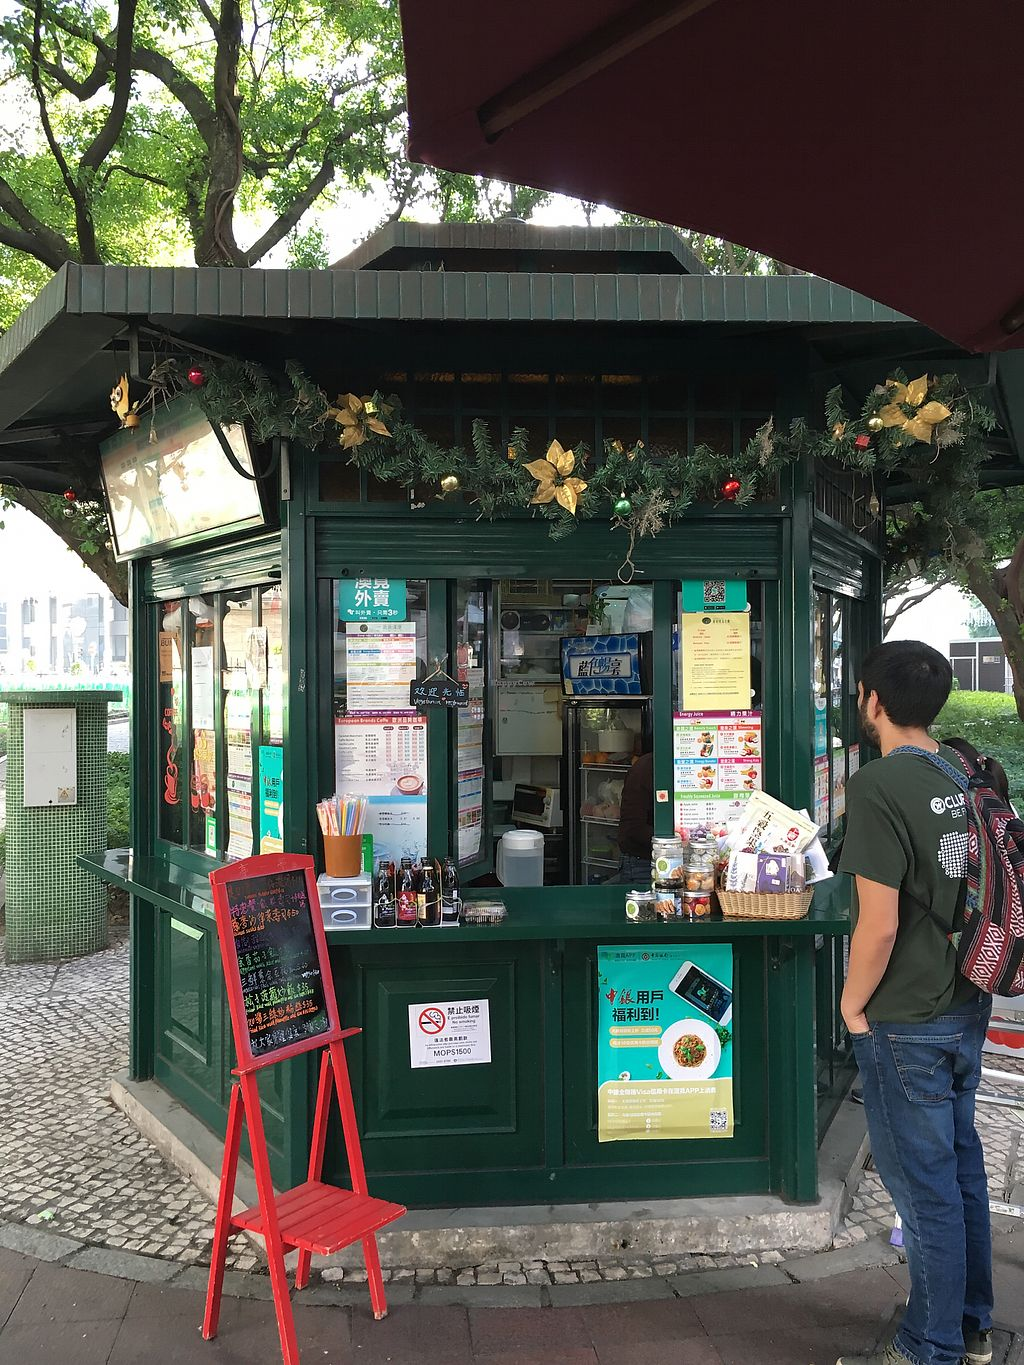 """Photo of Ting Ting Cafe  by <a href=""""/members/profile/Veg4Jay"""">Veg4Jay</a> <br/>Kiosk <br/> November 28, 2017  - <a href='/contact/abuse/image/58022/329916'>Report</a>"""